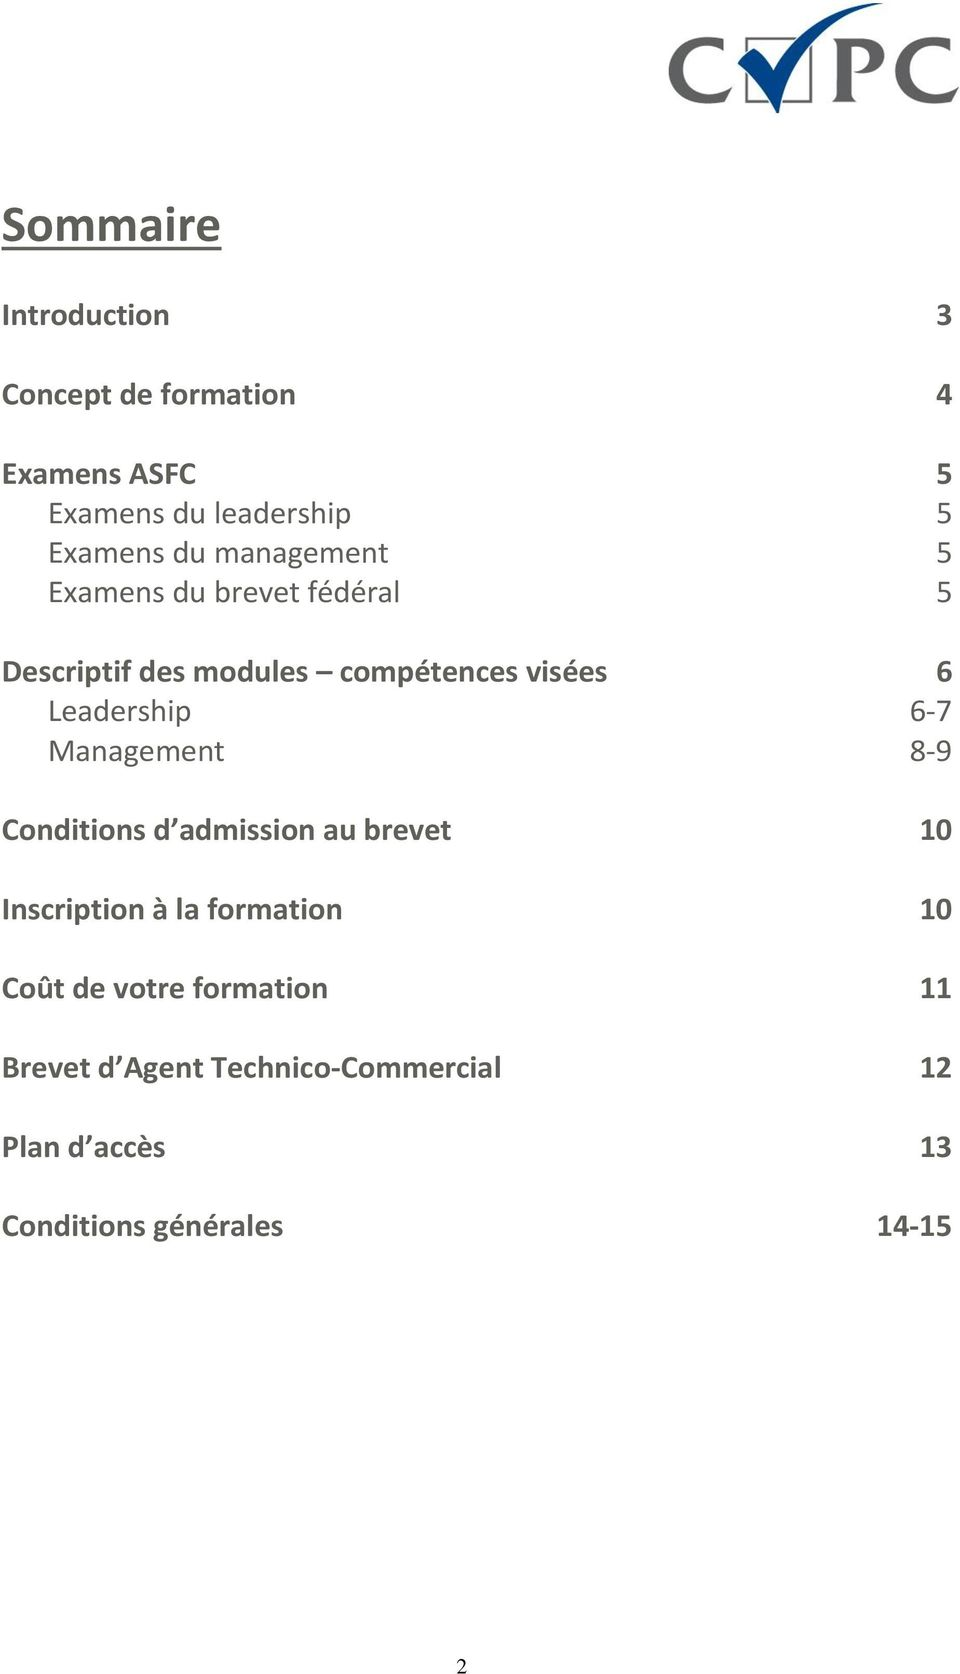 6-7 Management 8-9 Conditions d admission au brevet 10 Inscription à la formation 10 Coût de